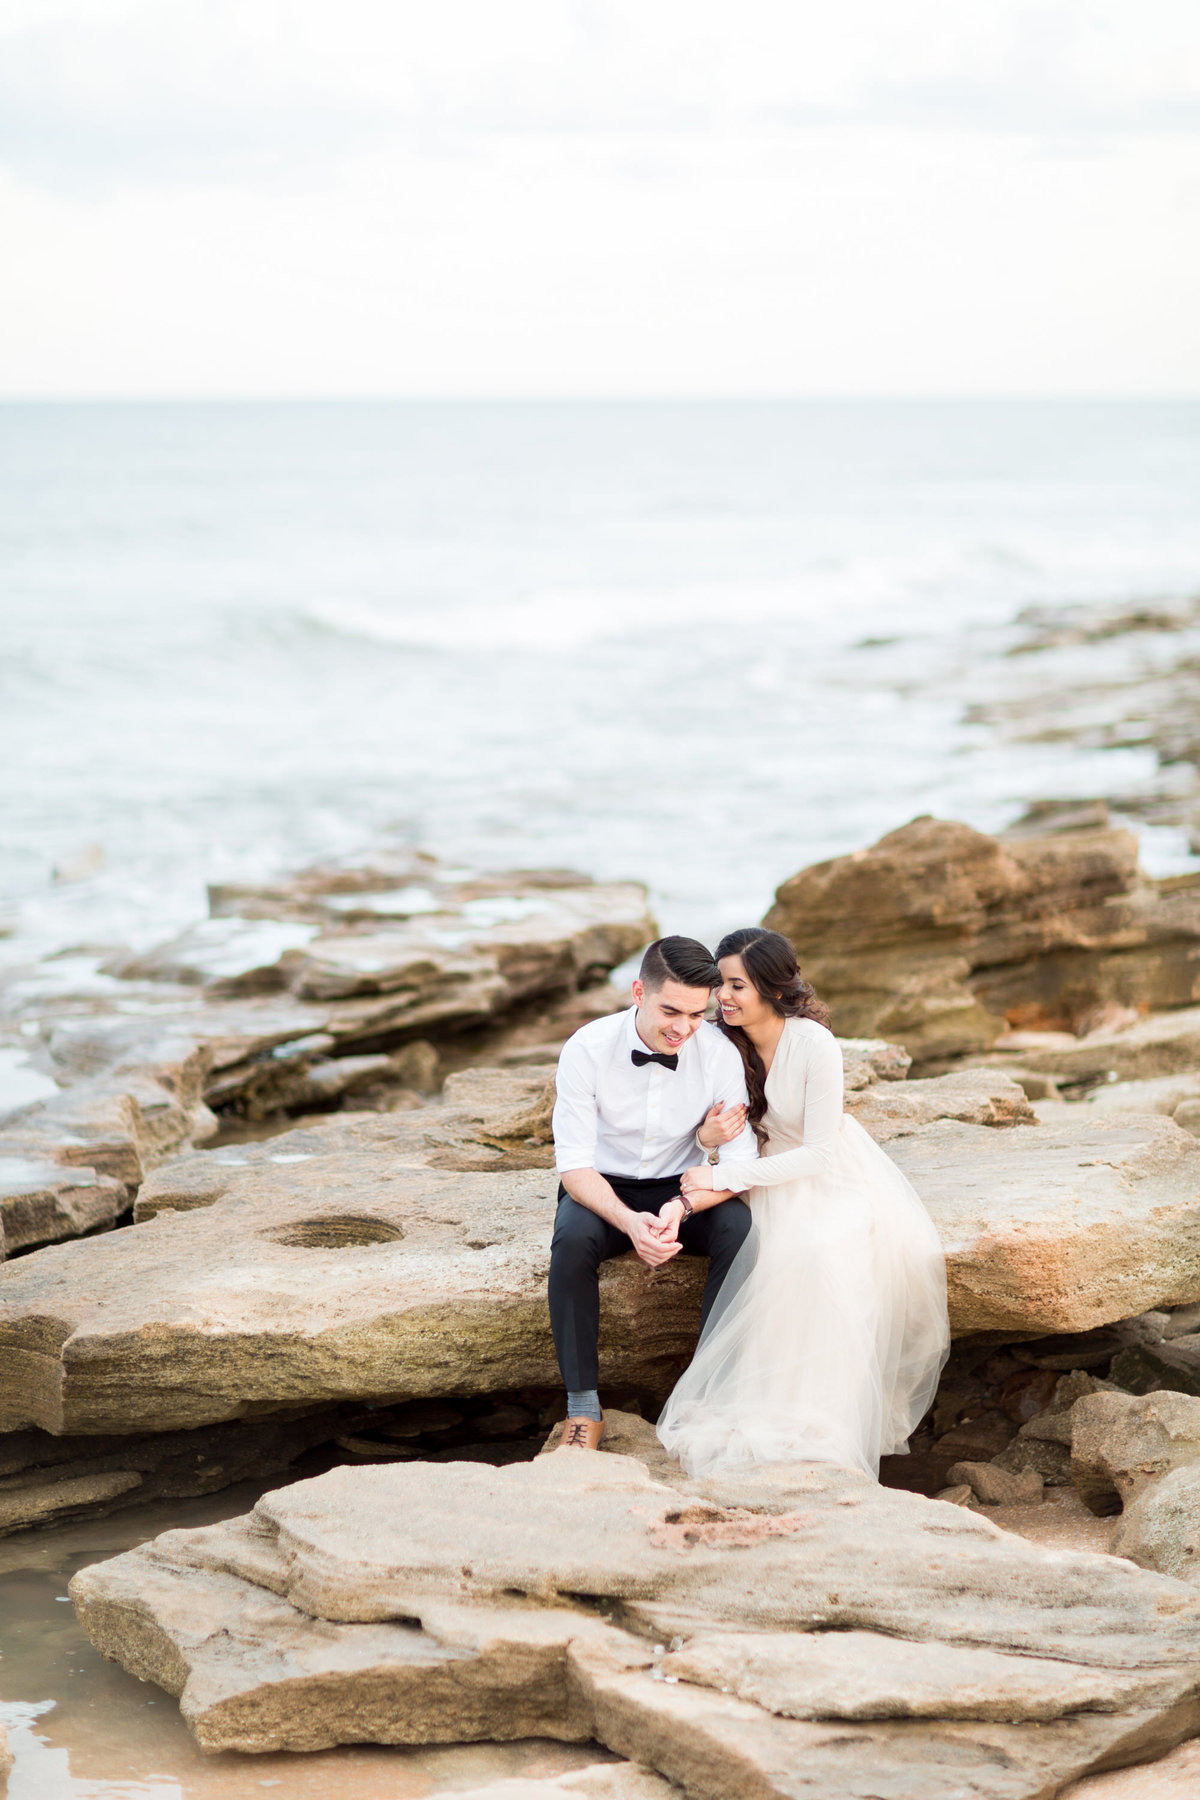 Bri-Cibene-Photography-Engagements_0090